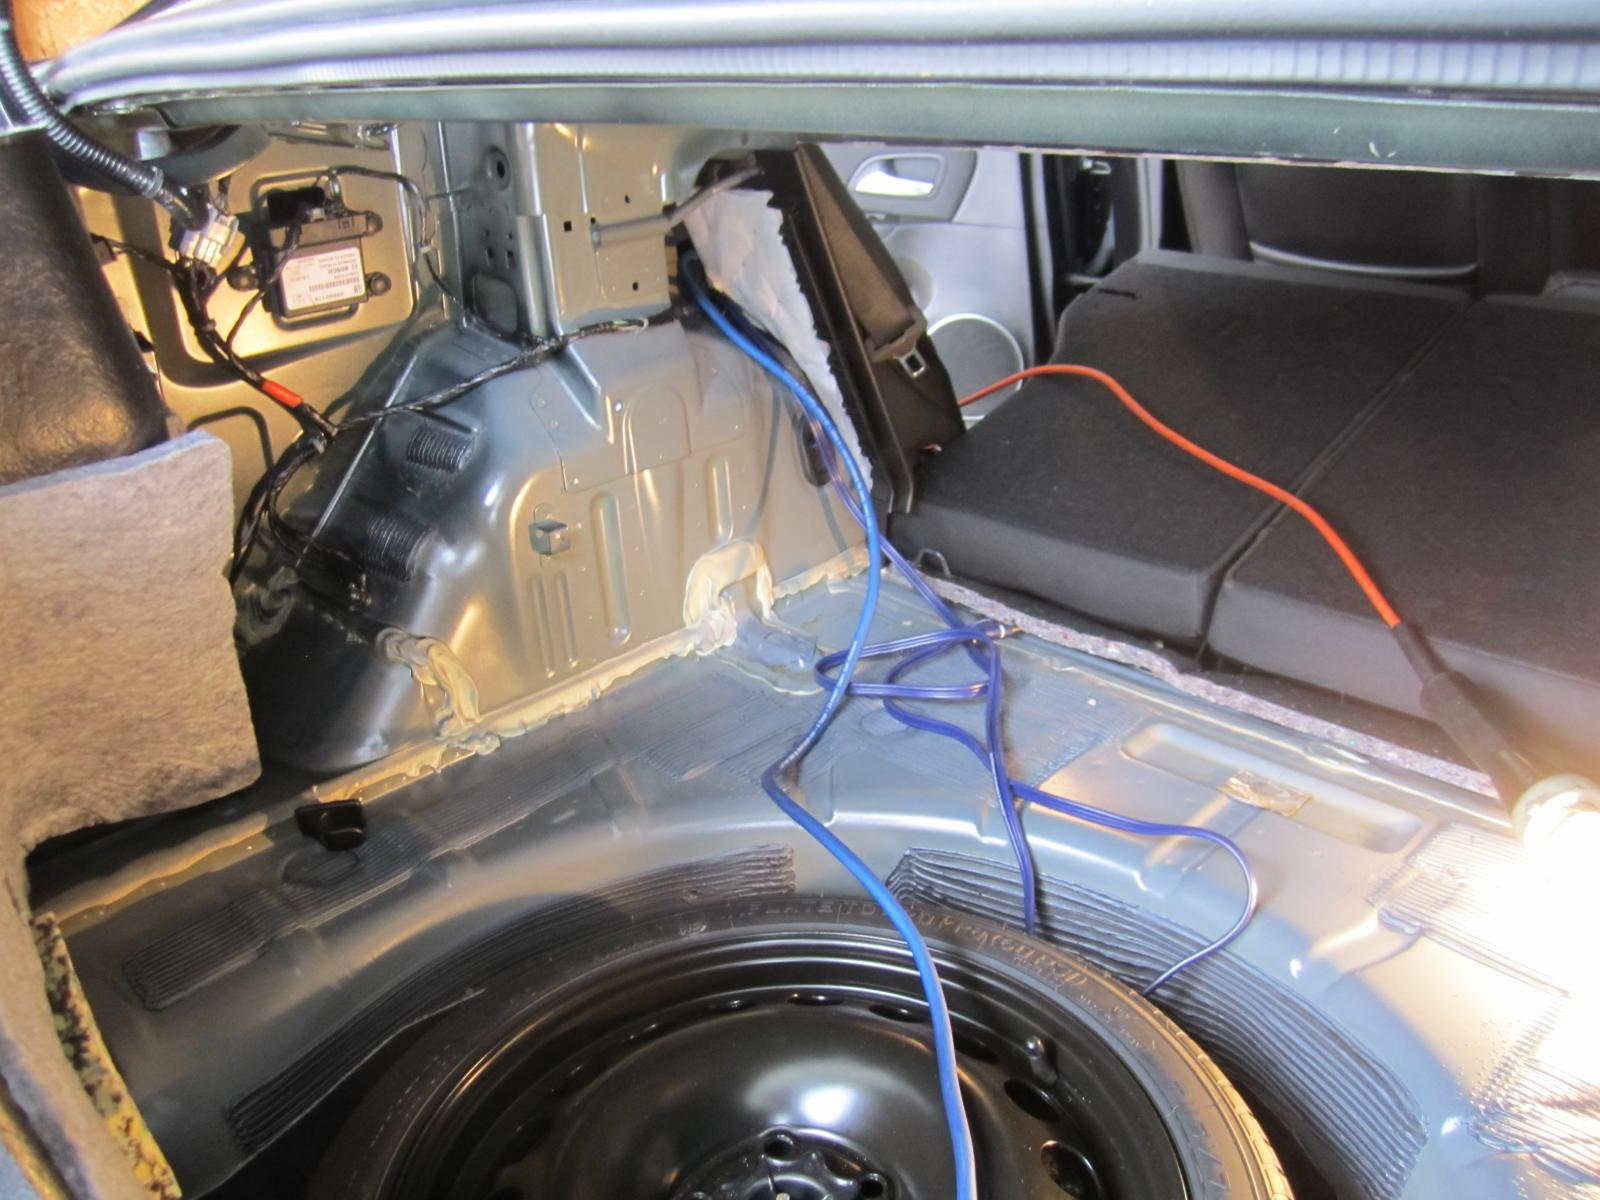 Chevy Cruze Wiring Harness Library Tundra Oem Radio Wire Diagram Subwoofer Install 003 2 Help With Tapping Into Stock Speaker